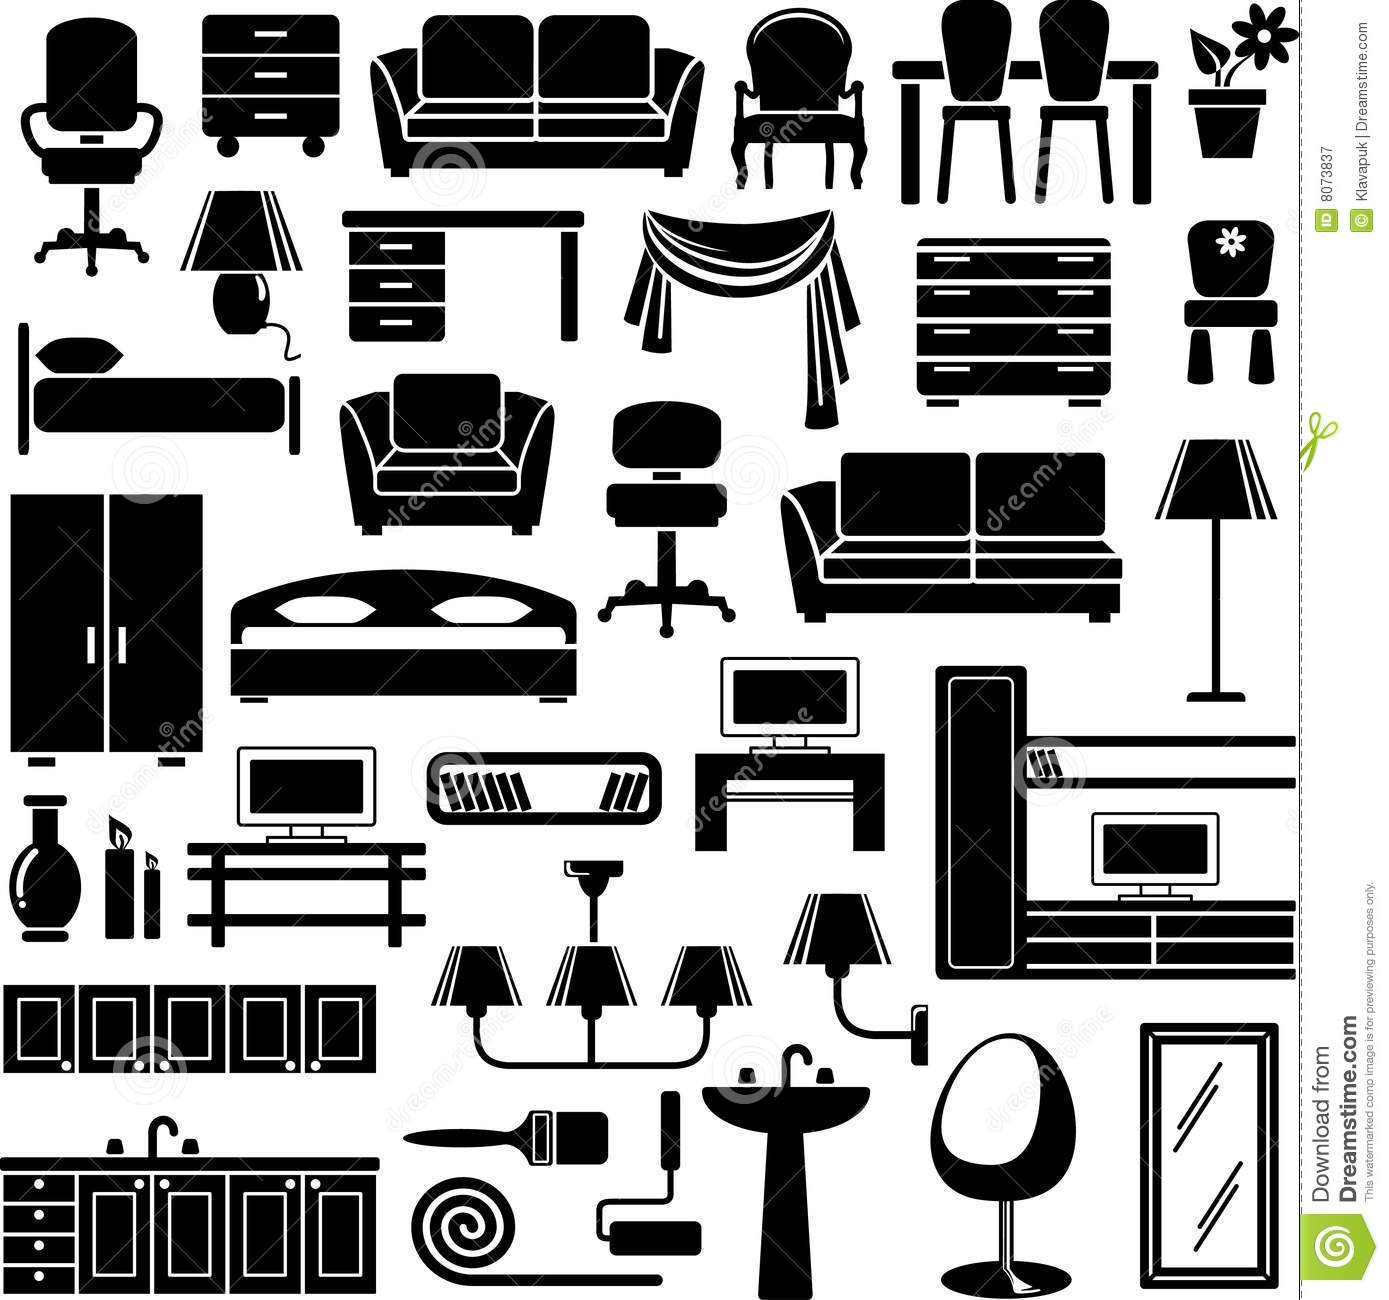 Bedroom Clip Art Black And White Bedroom Ceiling Tv Mount Bedroom Apartment Design Ideas Bedroom Ideas Luxury: Furniture Icons Set Royalty Free Stock Photography